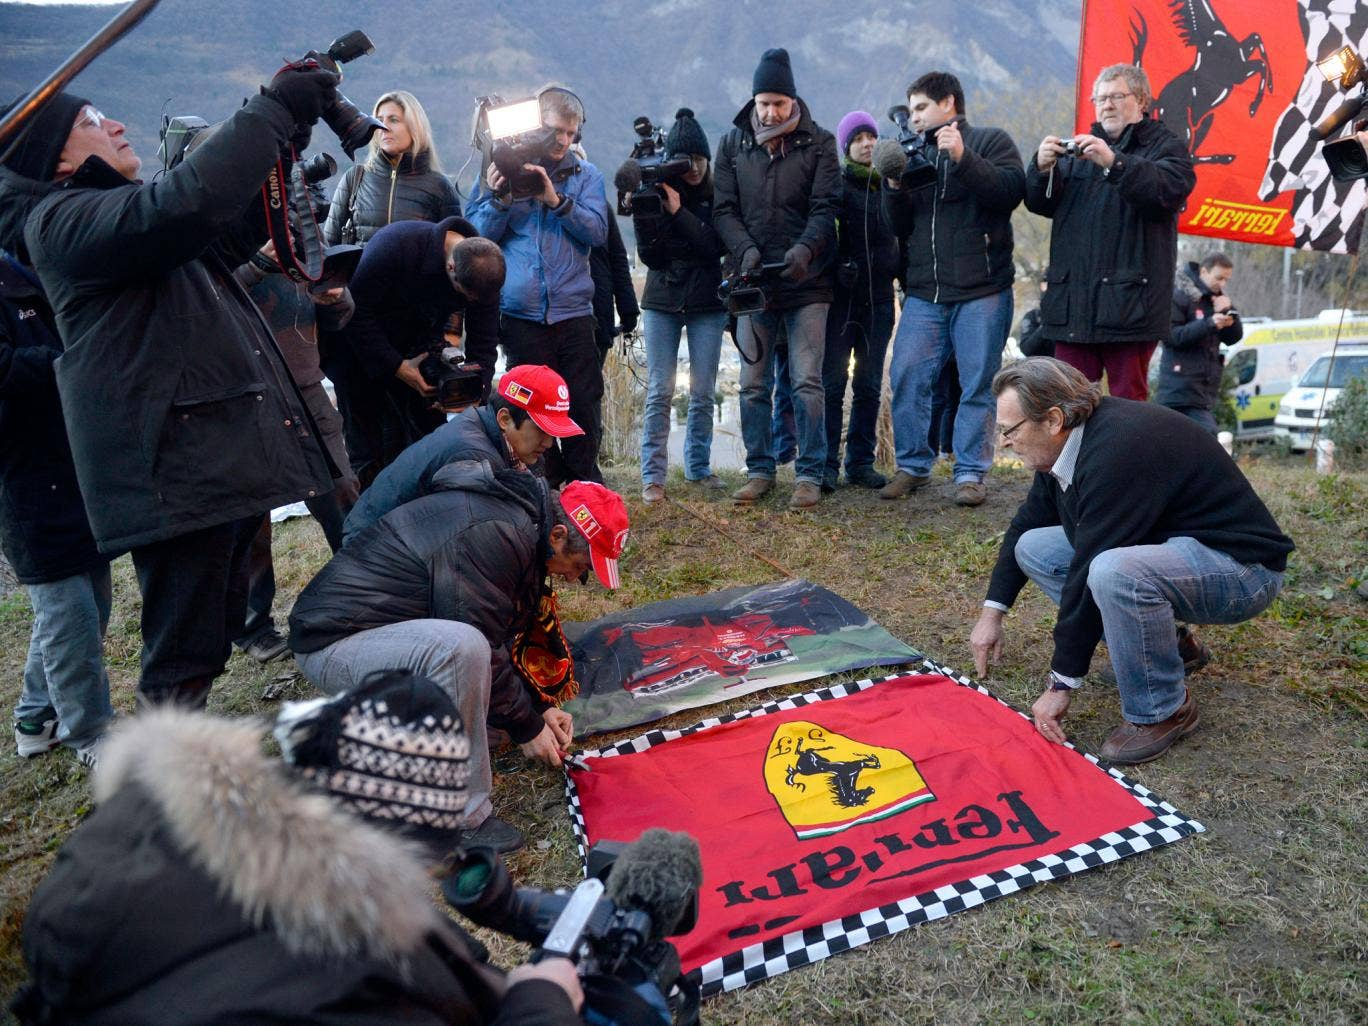 Fans of Michael Schumacher and Ferrari lay down flags to support the former F1 world champion in a show of support as he continues to fight for his life